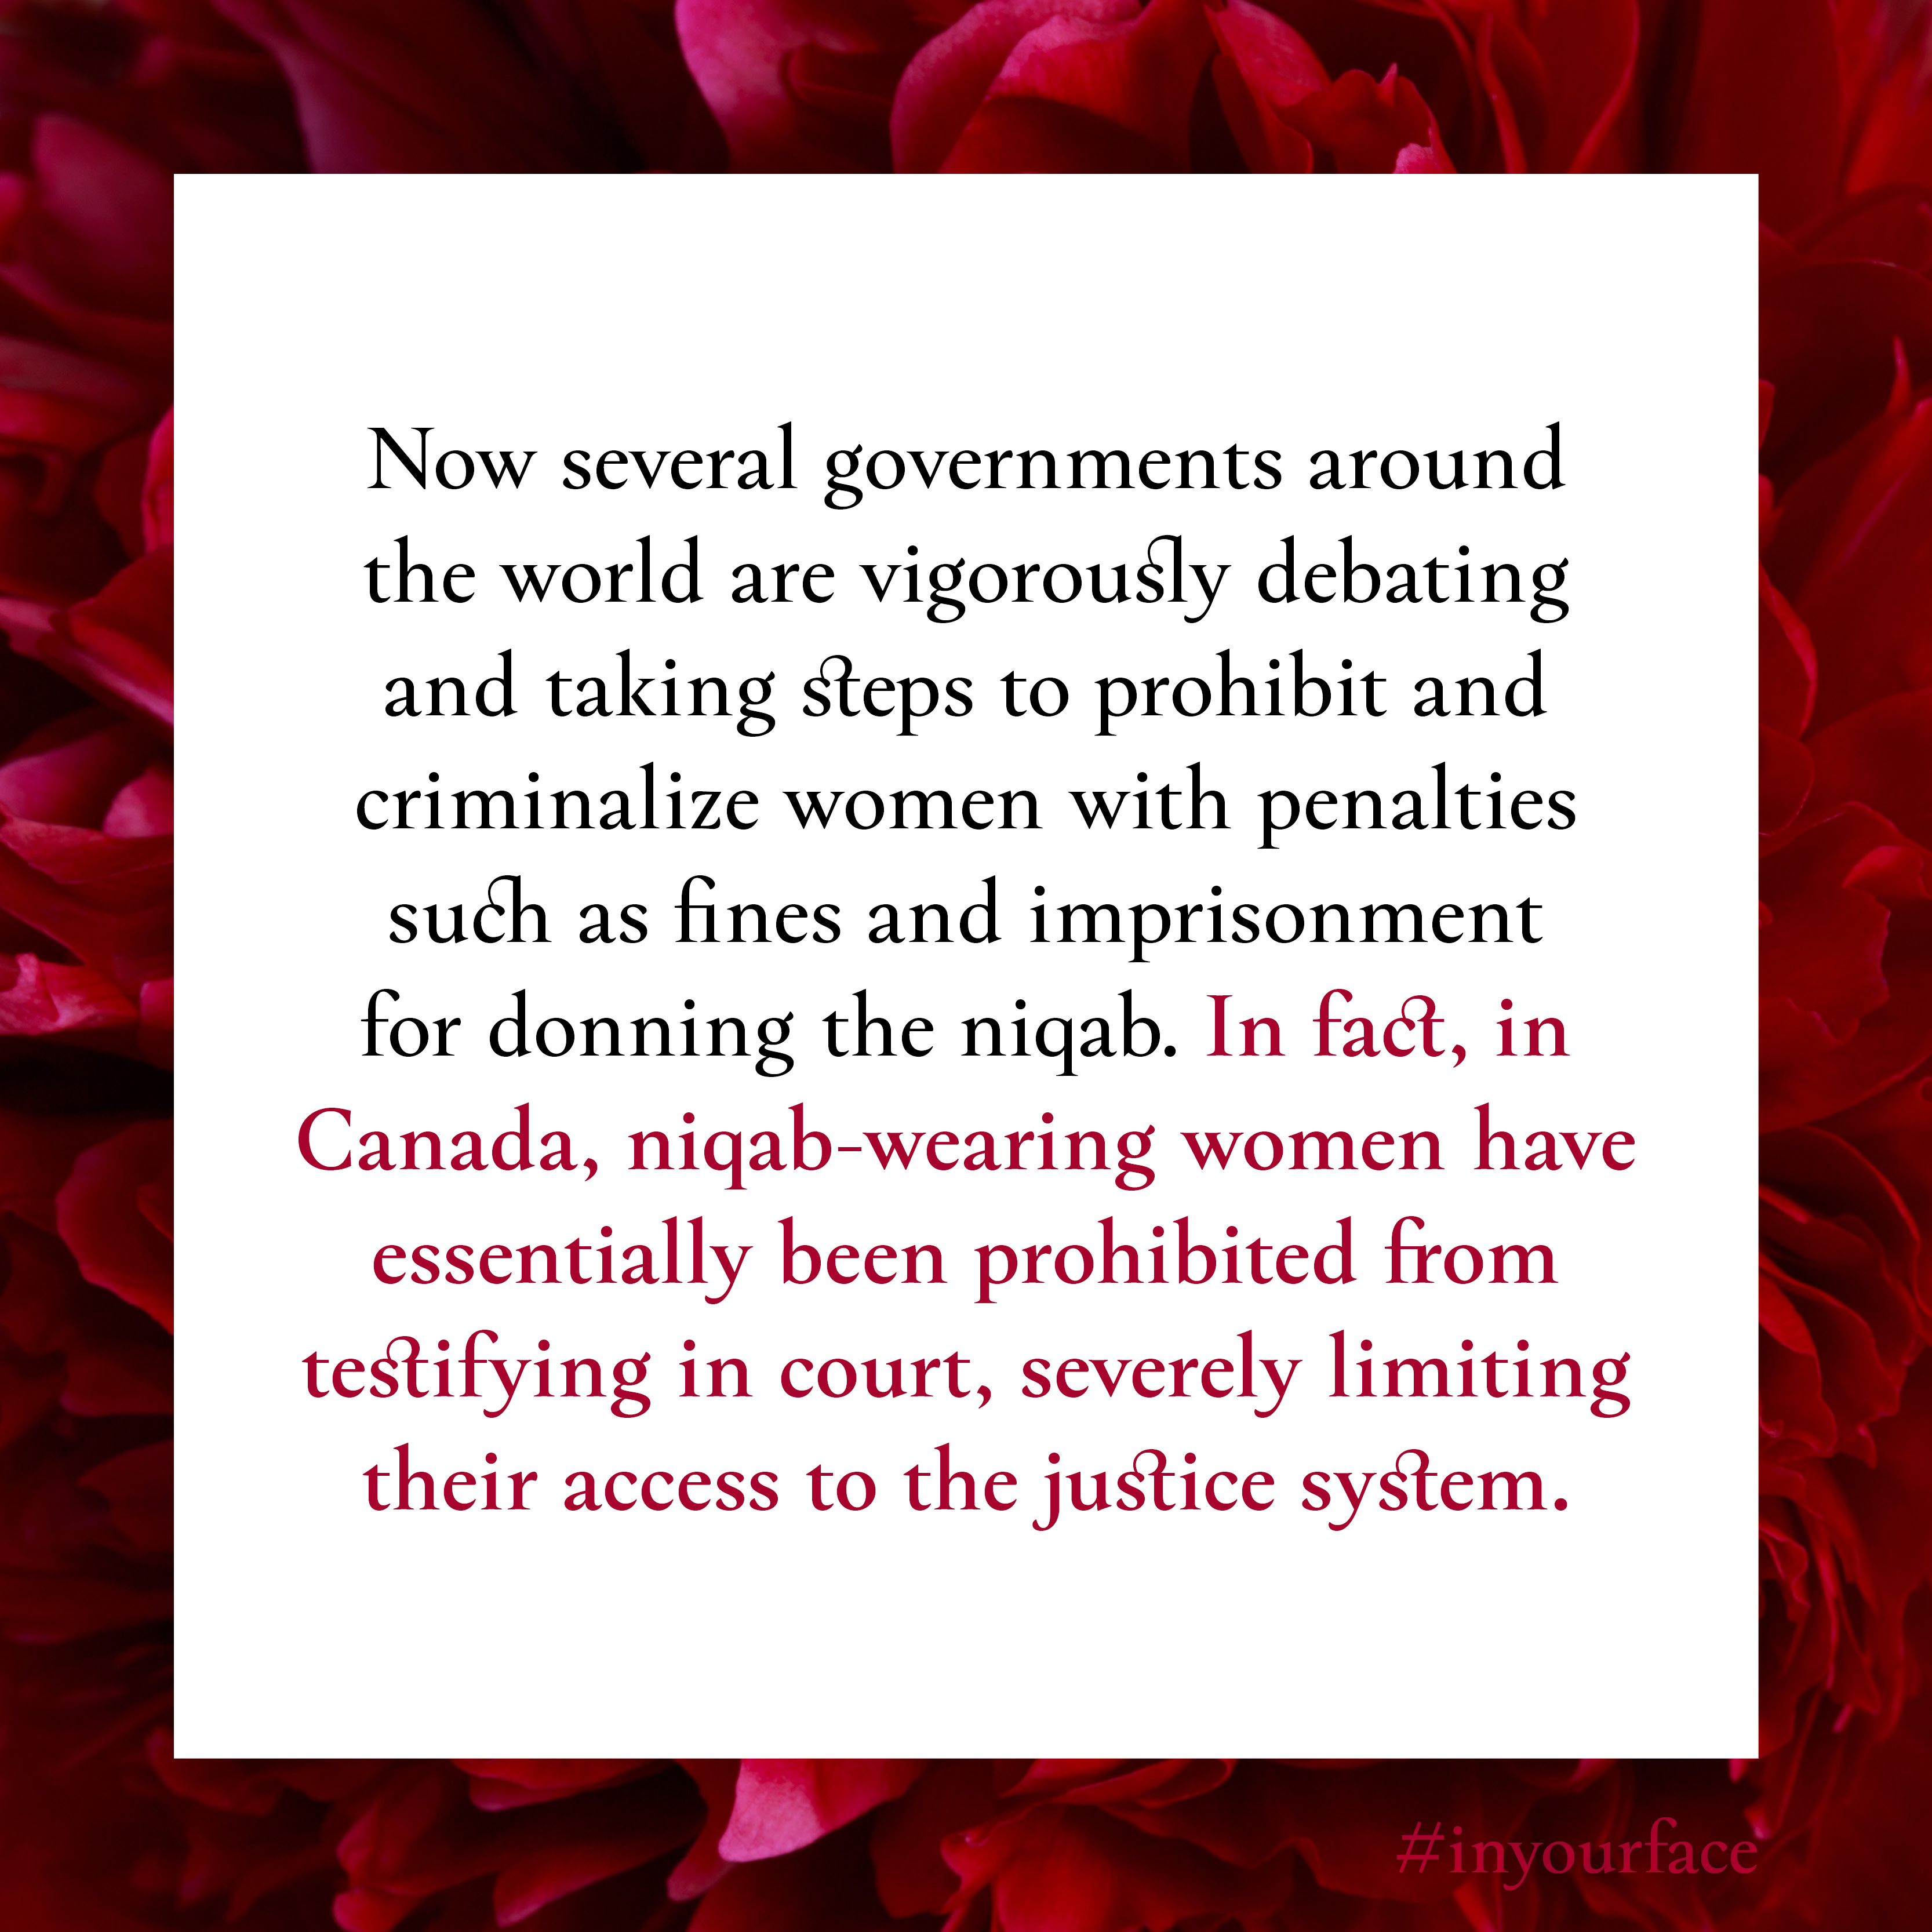 """Excerpt from In Your Face by Natasha Bakht. It reads: """"Now several governments around the world are vigorously debating and taking steps to prohibit and criminalize women with penalties such as fines and imprisonment for donning the niqab. In fact, in Canada, niqab-wearing women have essentially been prohibited from testifying in court, severely limiting their access to the justice system."""""""